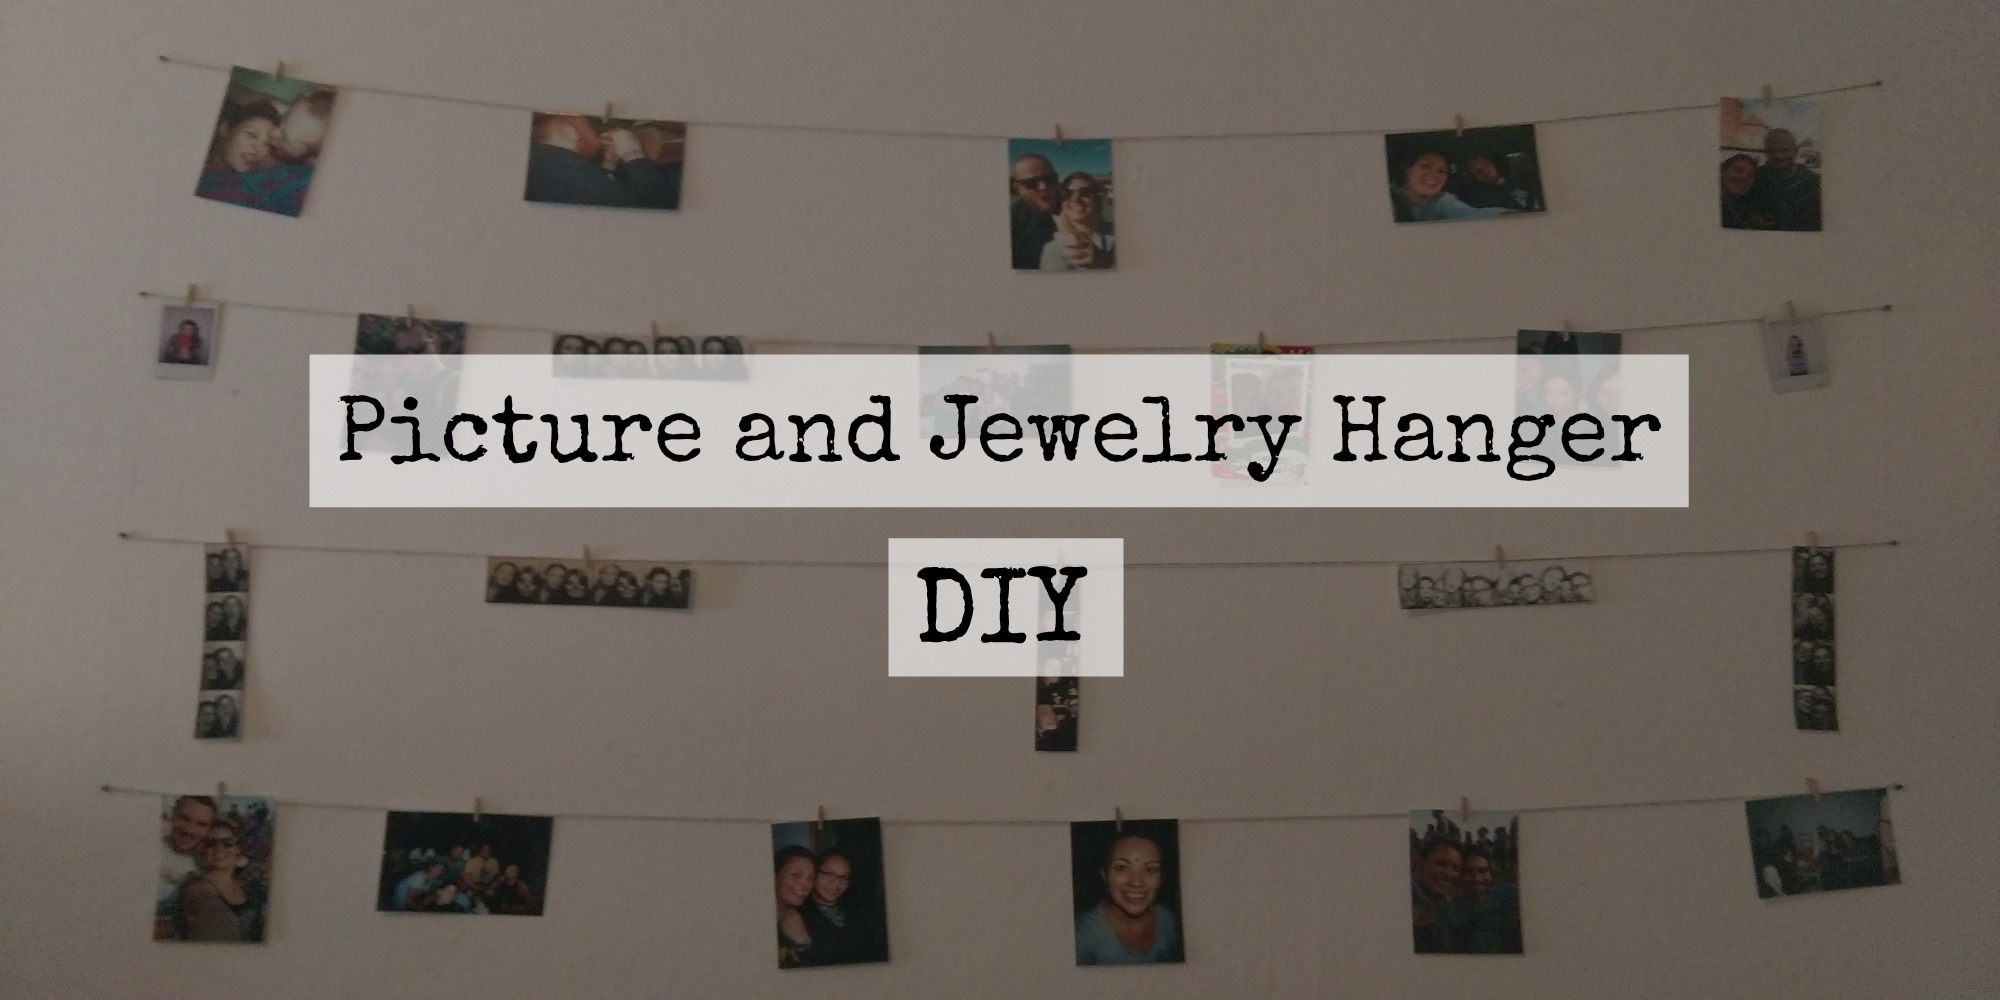 DIY picture and jewelry hanger